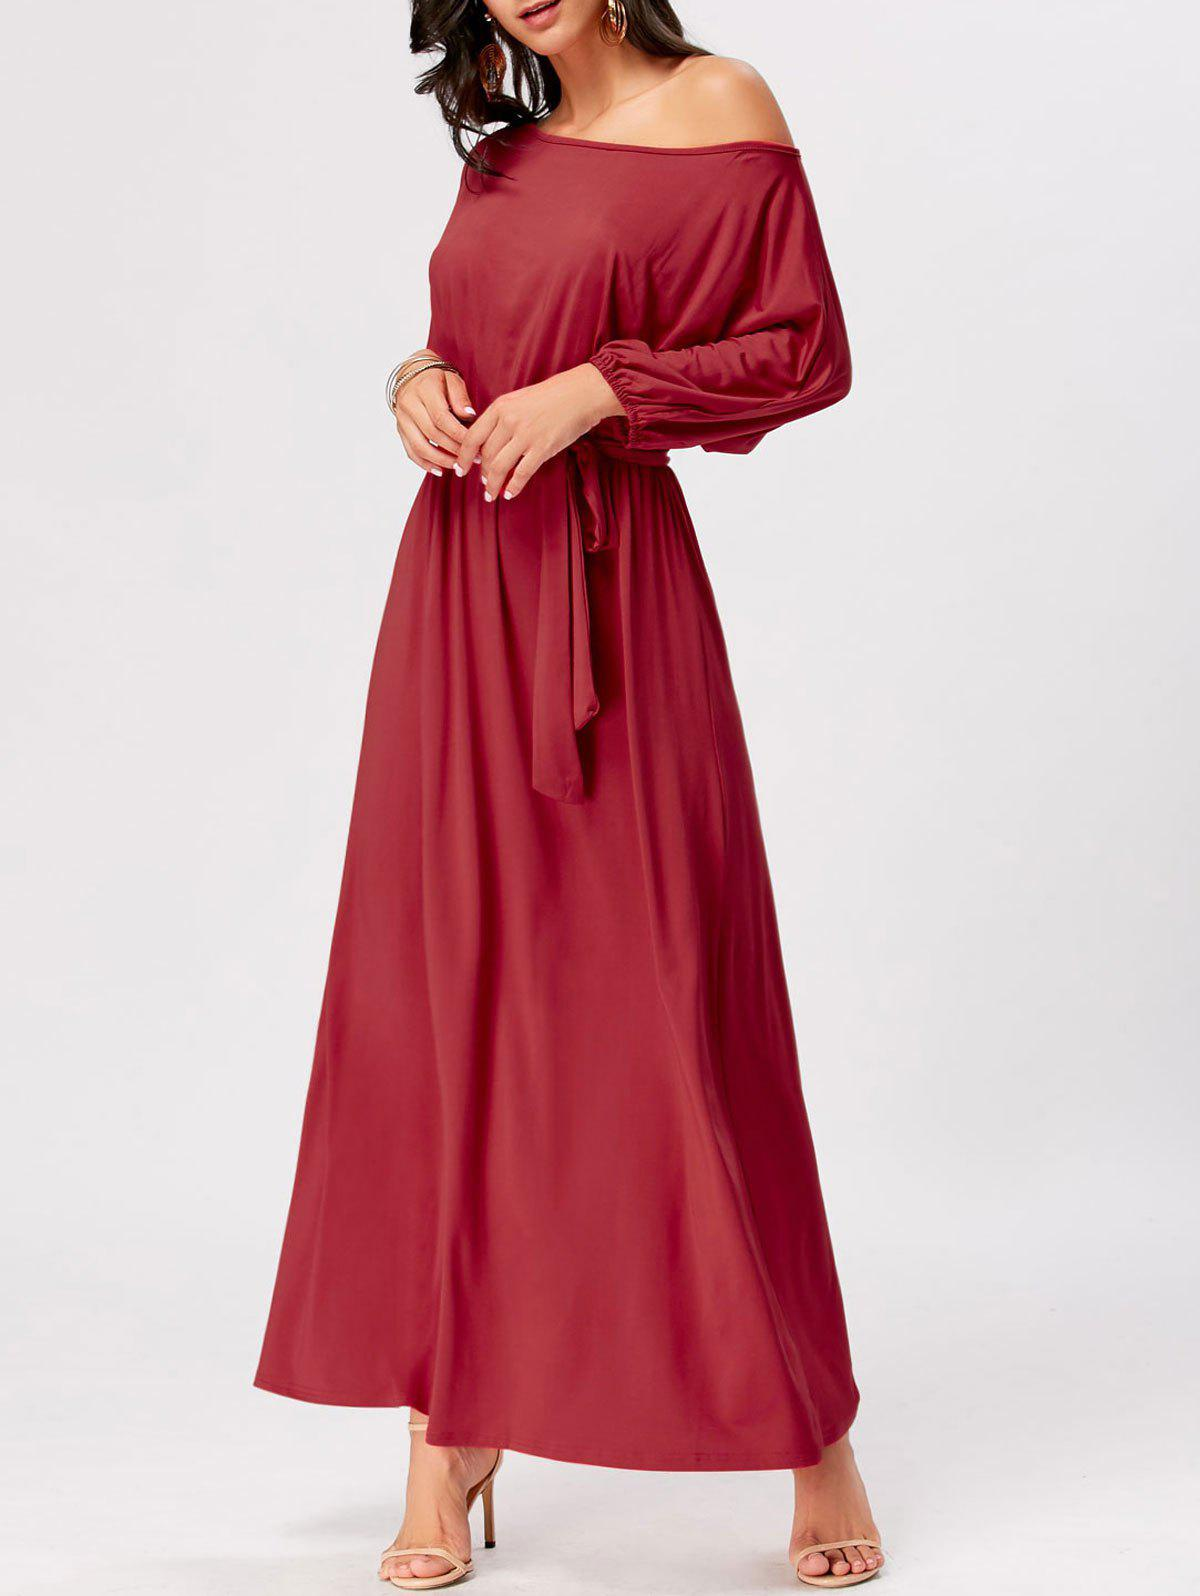 Fancy Boat Neck Maxi Party Dress